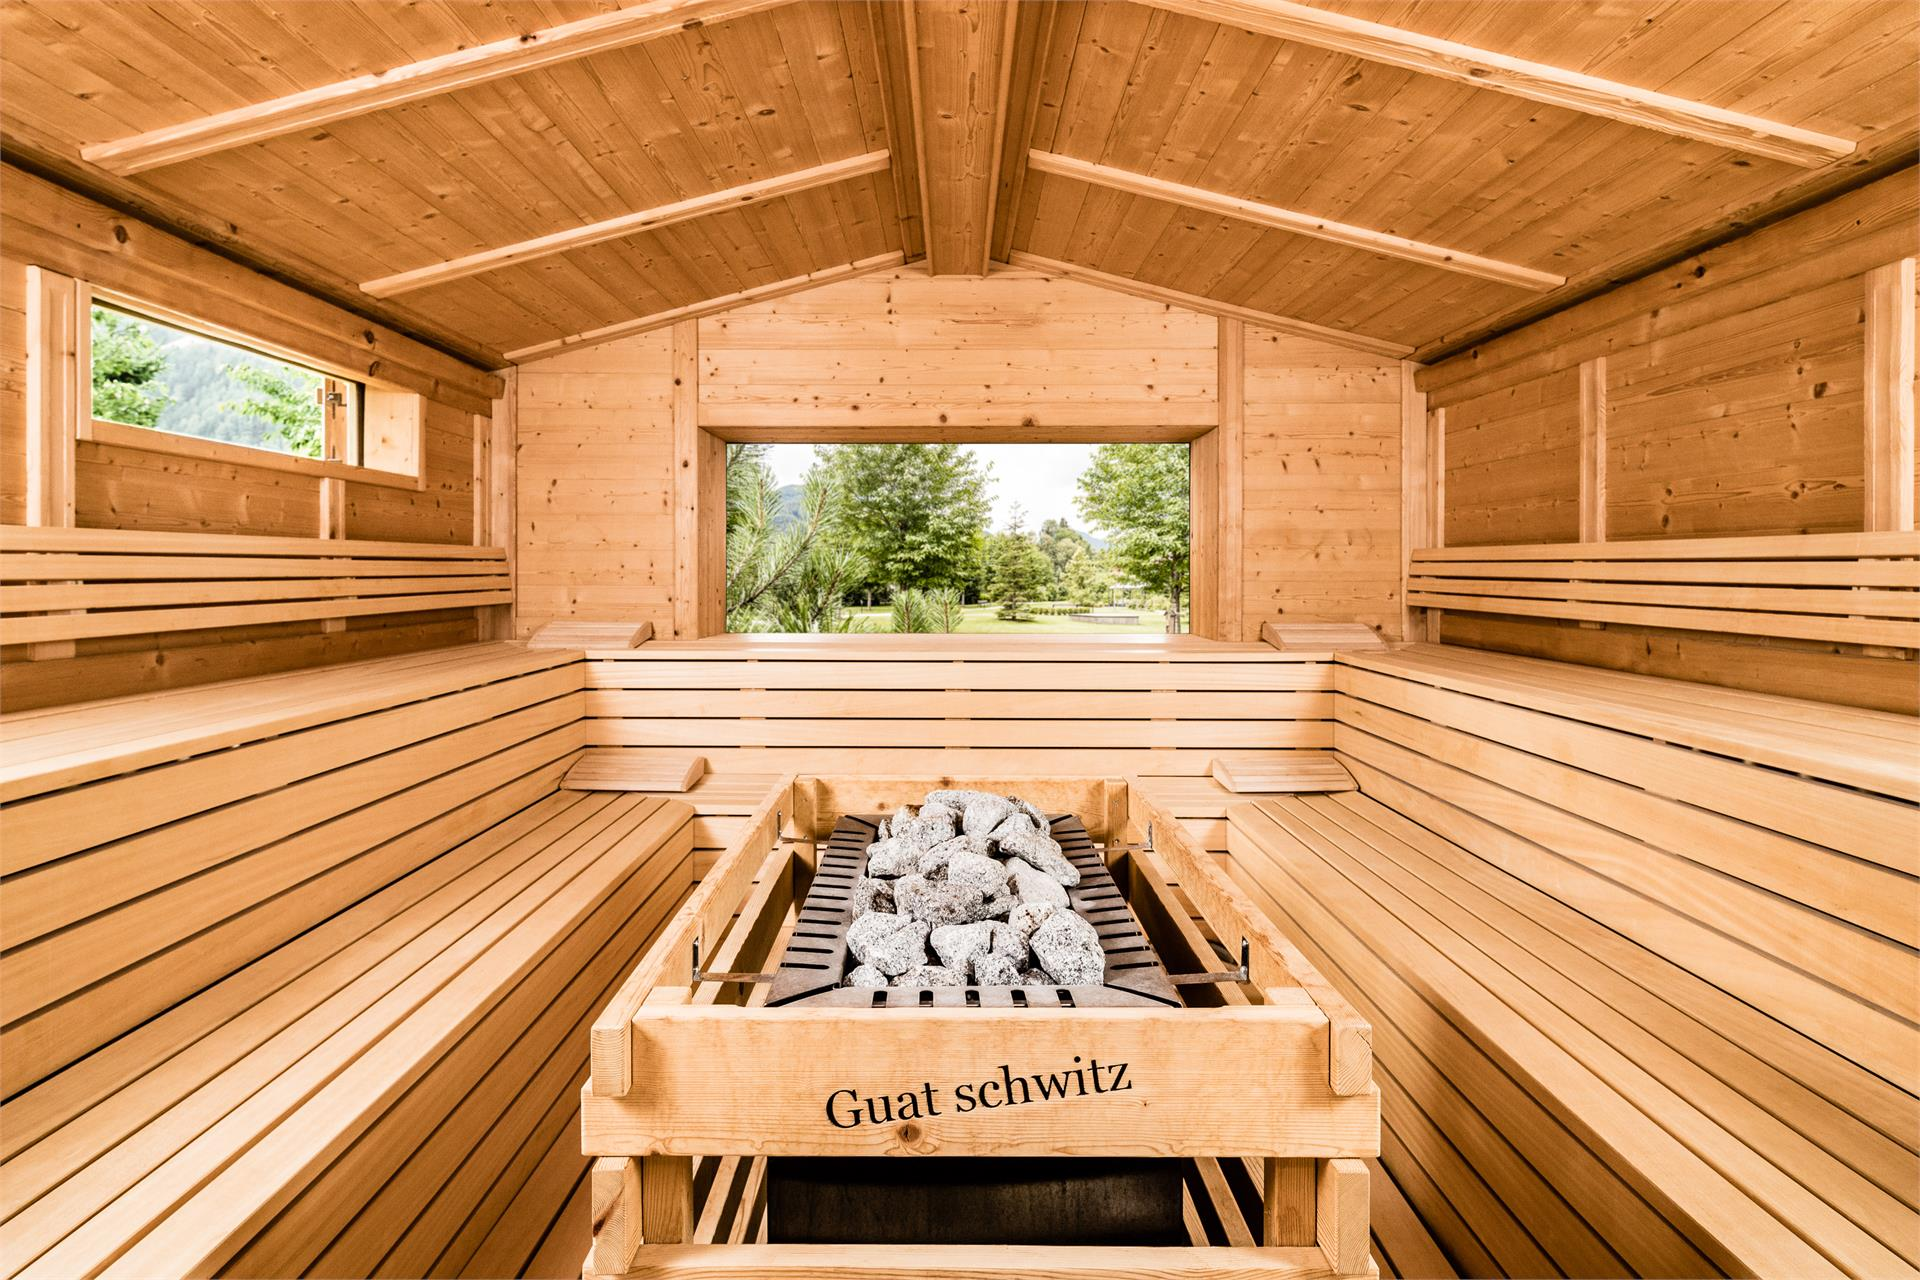 Sauna in baita all'aperto